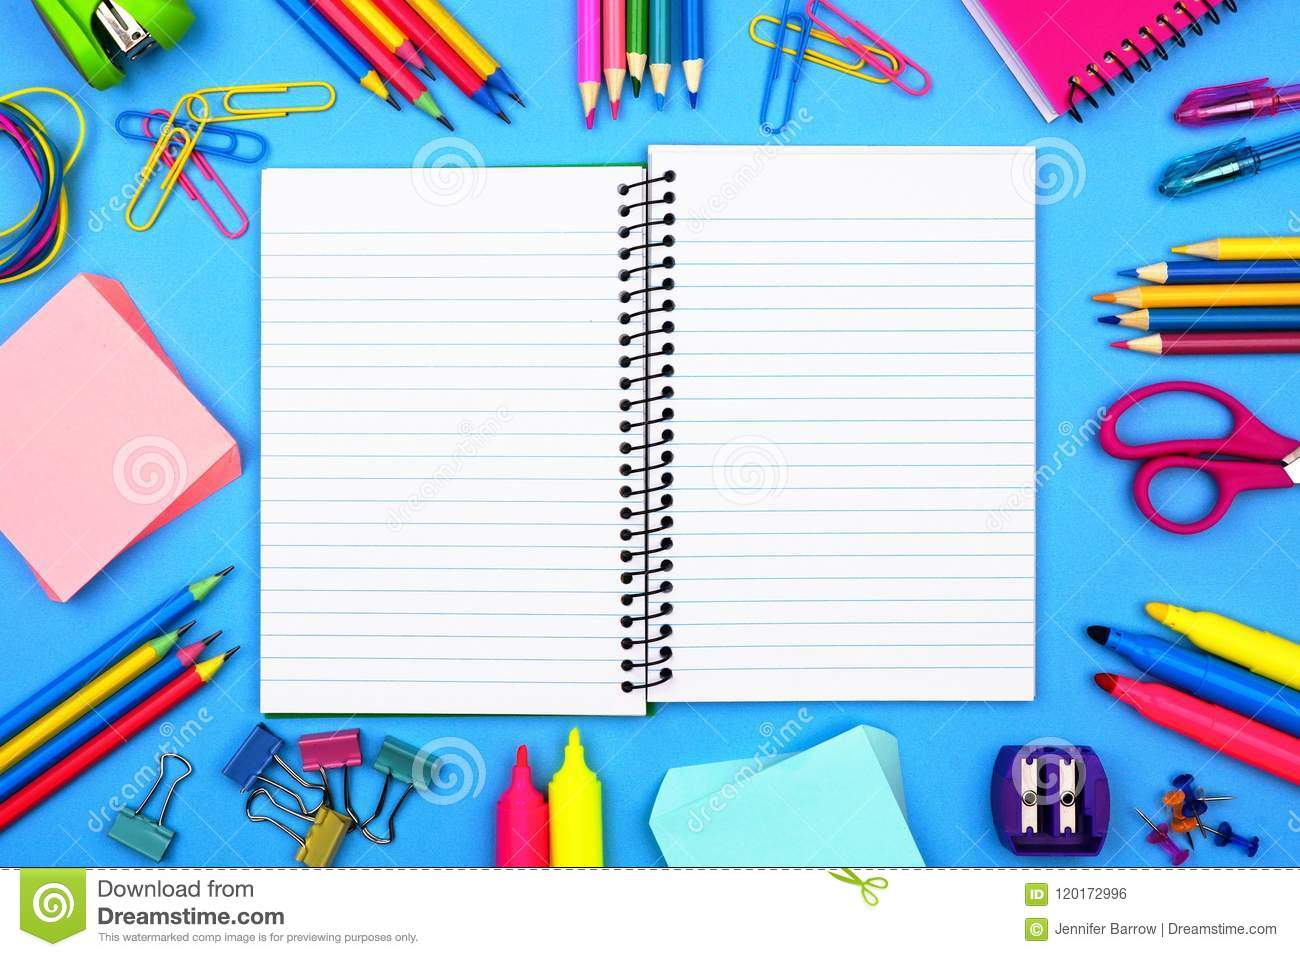 Open, Blank Lined Notebook With School Supplies Frame Over A Blue ...